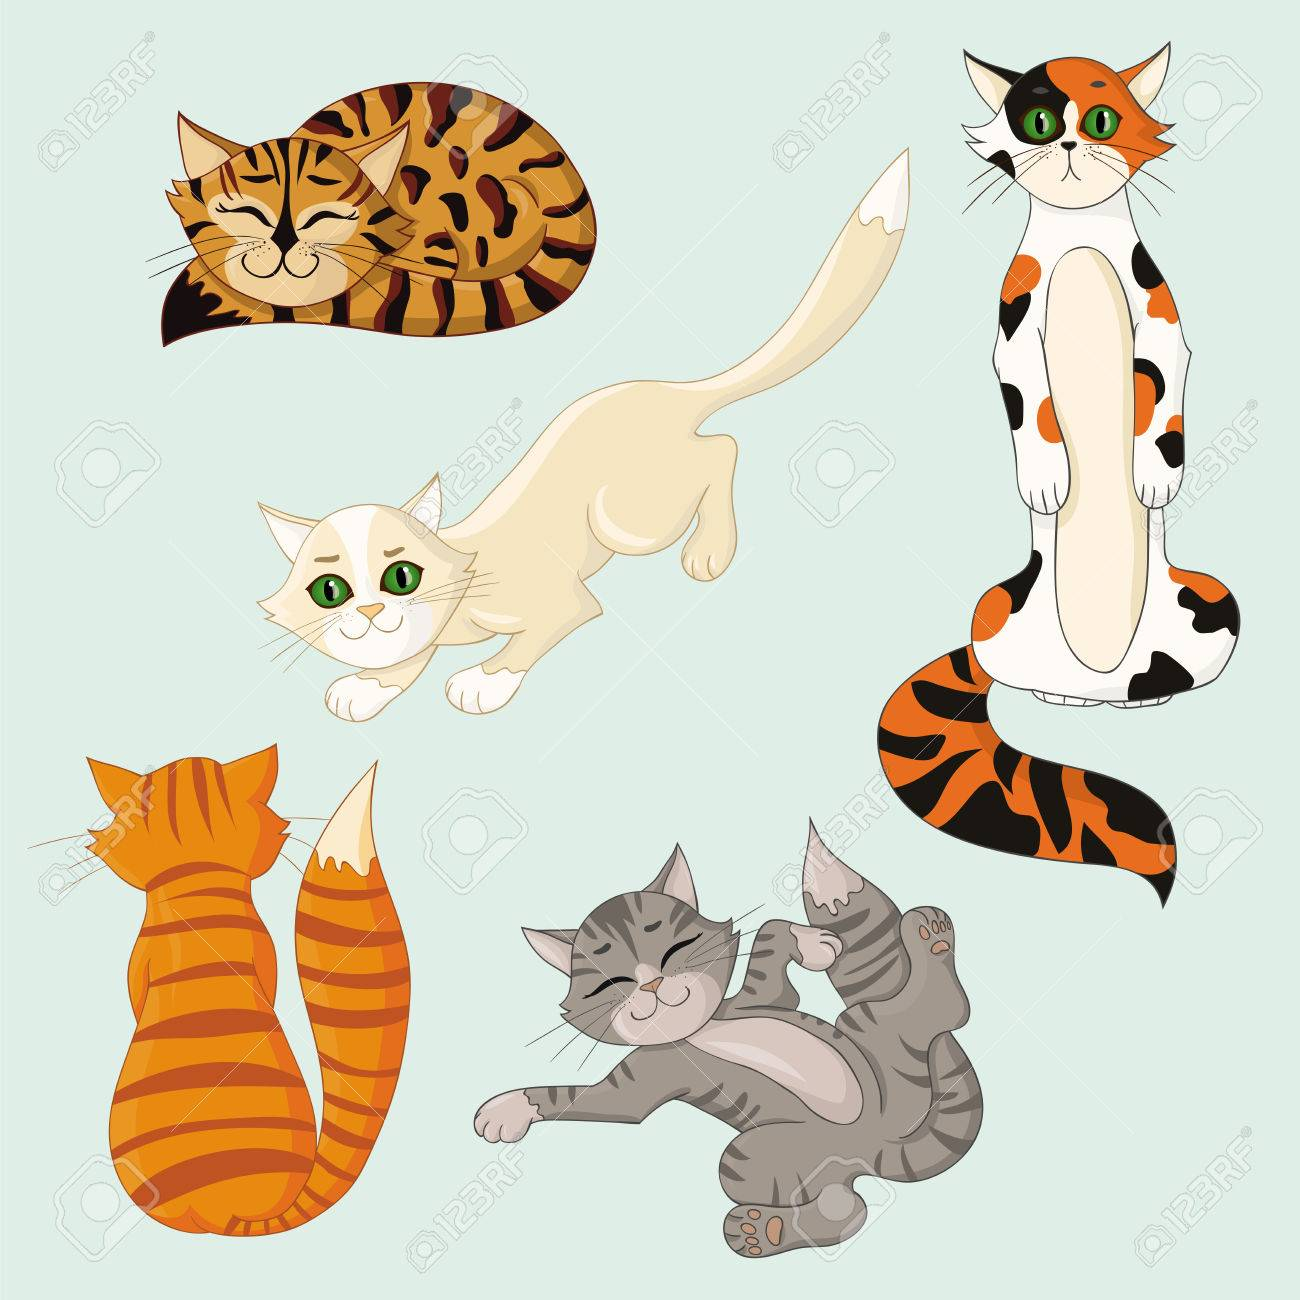 Set Of Funny Cartoon Cats With Different Colored Fur In Different